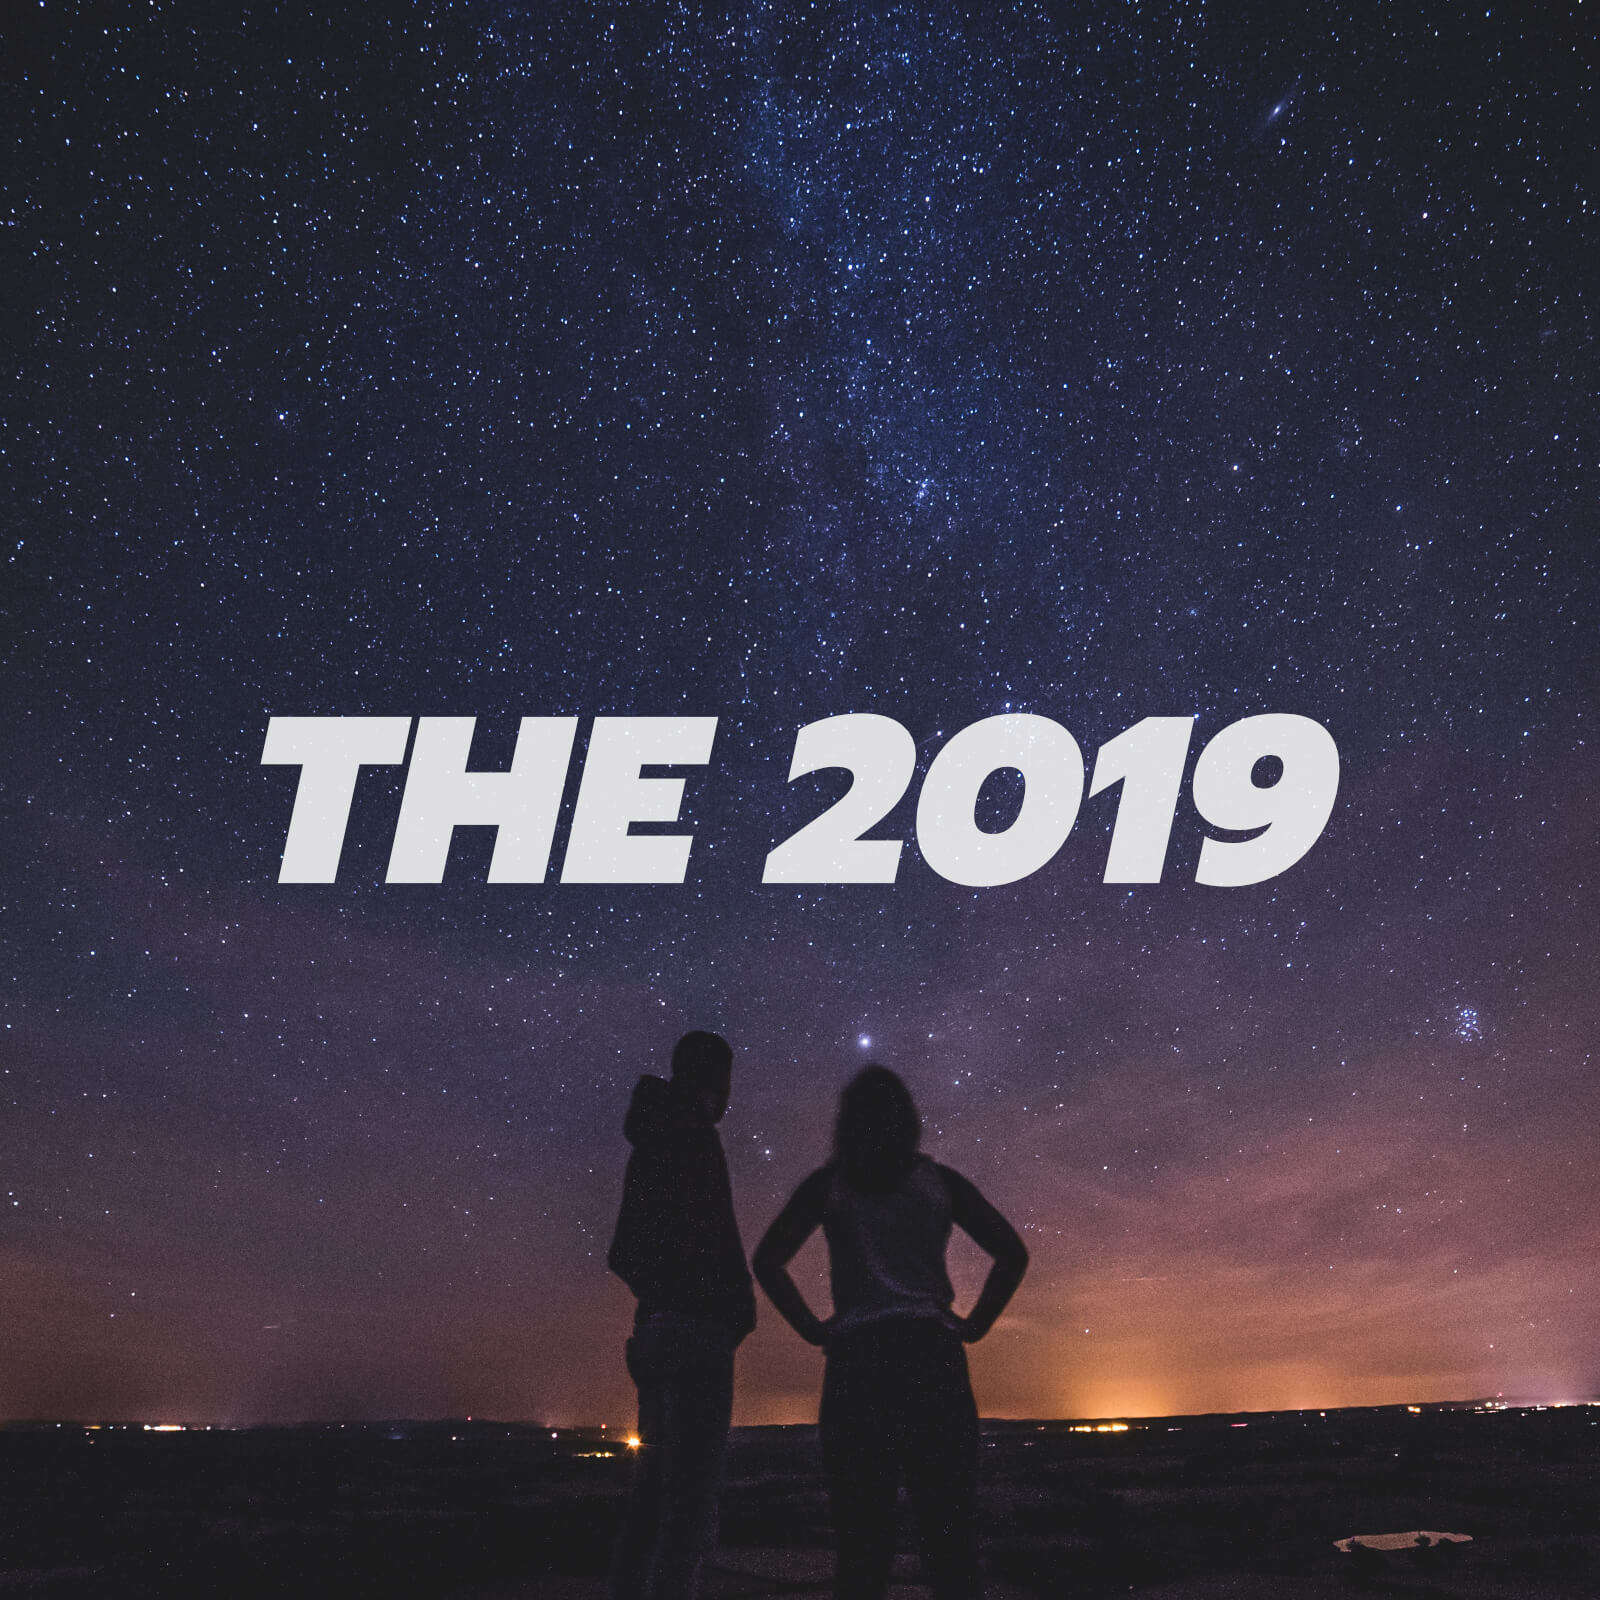 The 2019